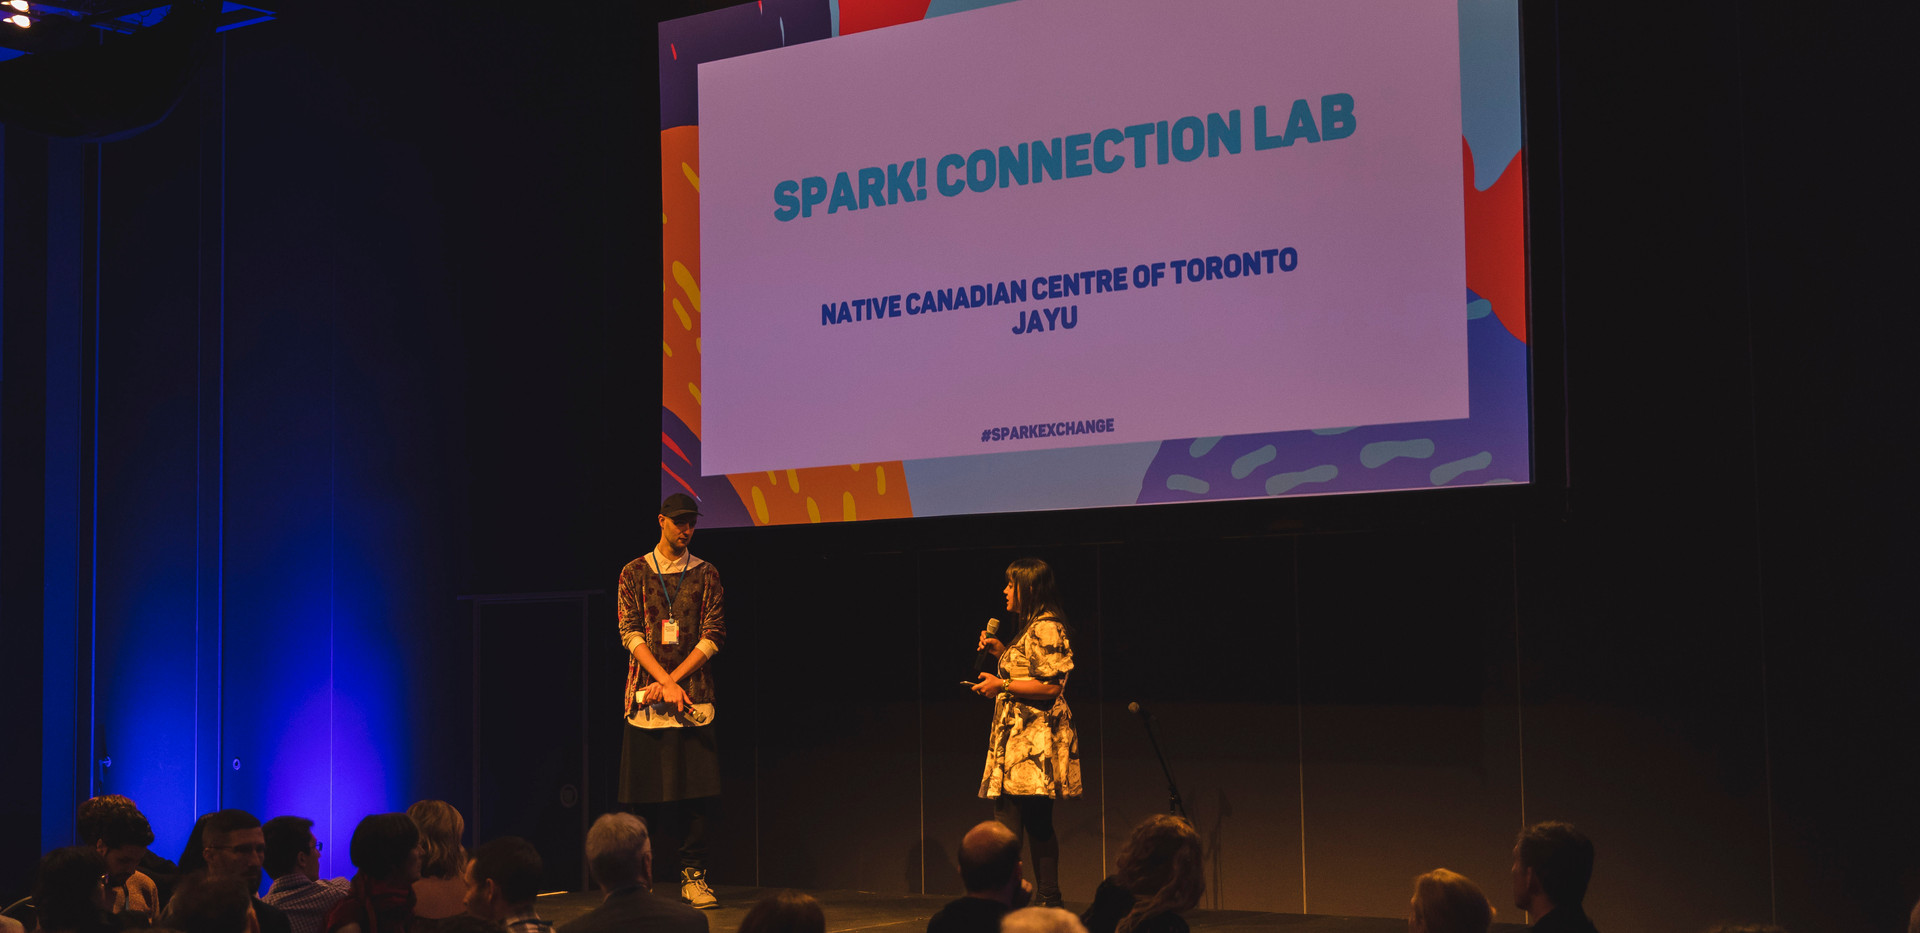 Our amazing hosts introducing the connection lab